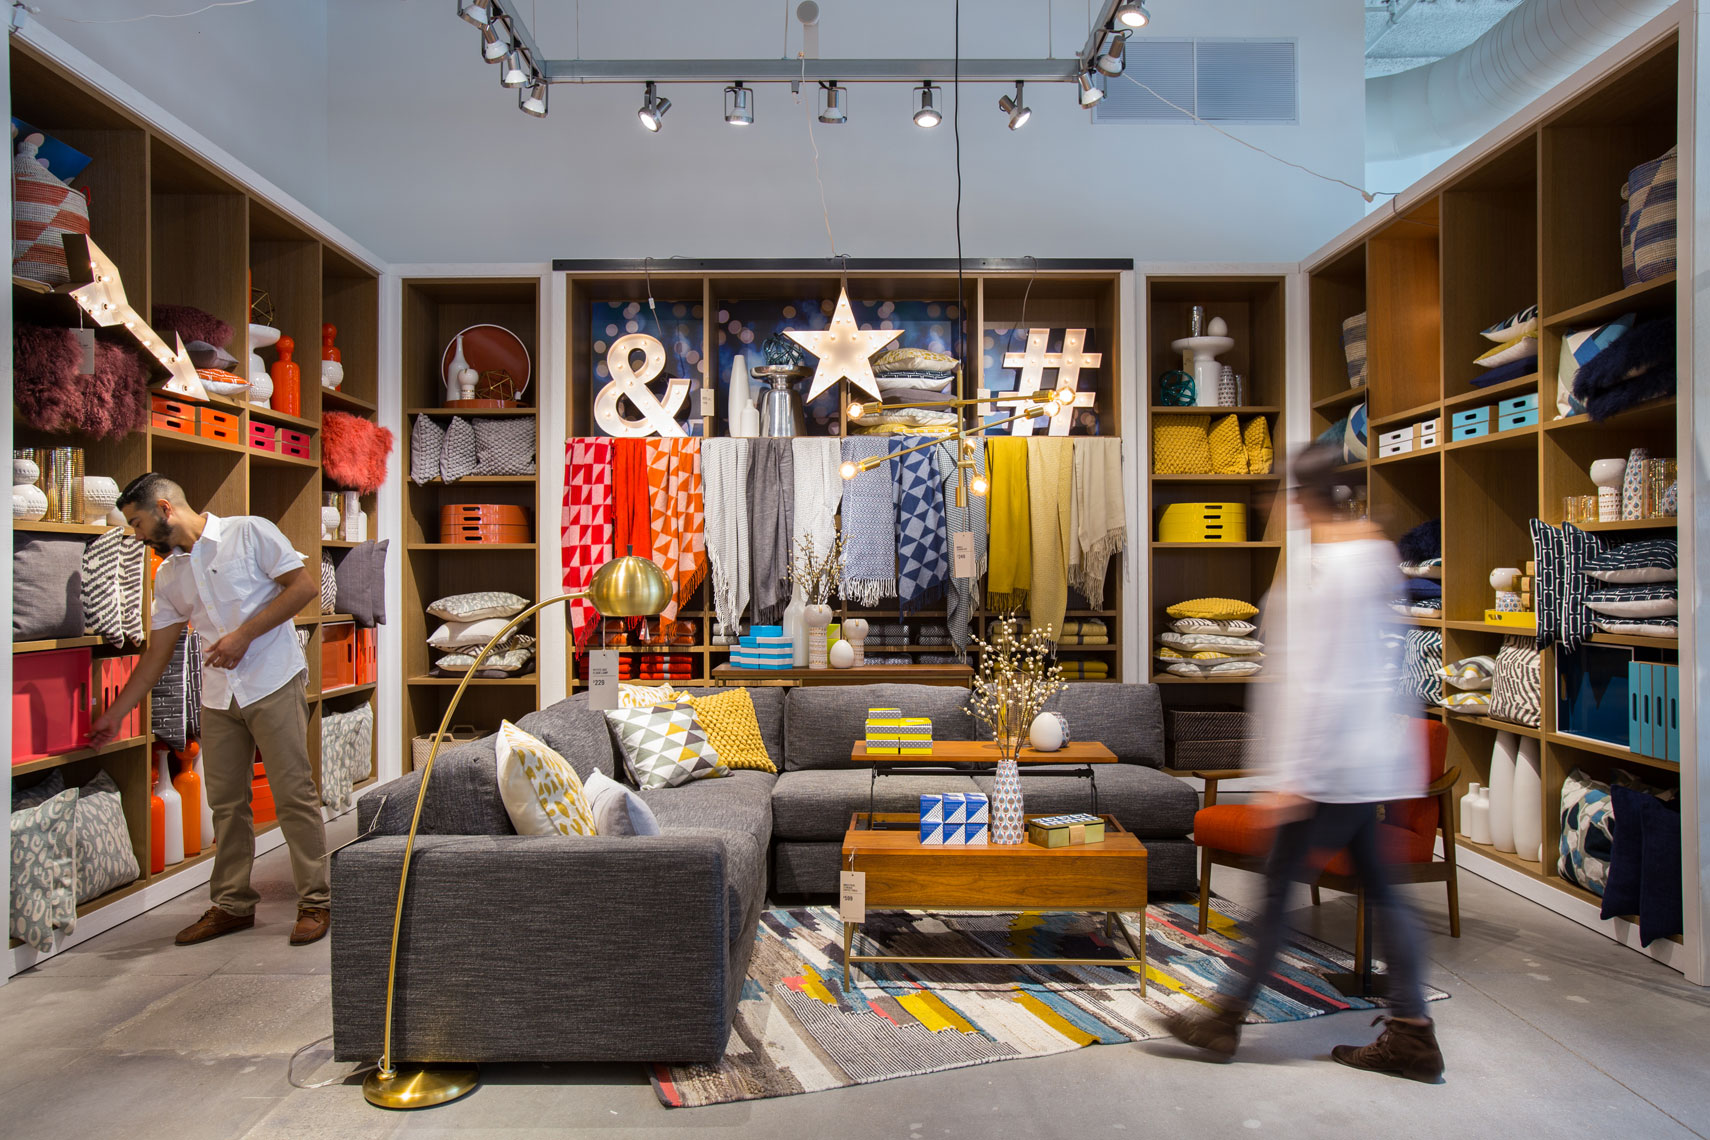 a shopper walks past a store display. An example of Retail interior design photography in Houston, Texas